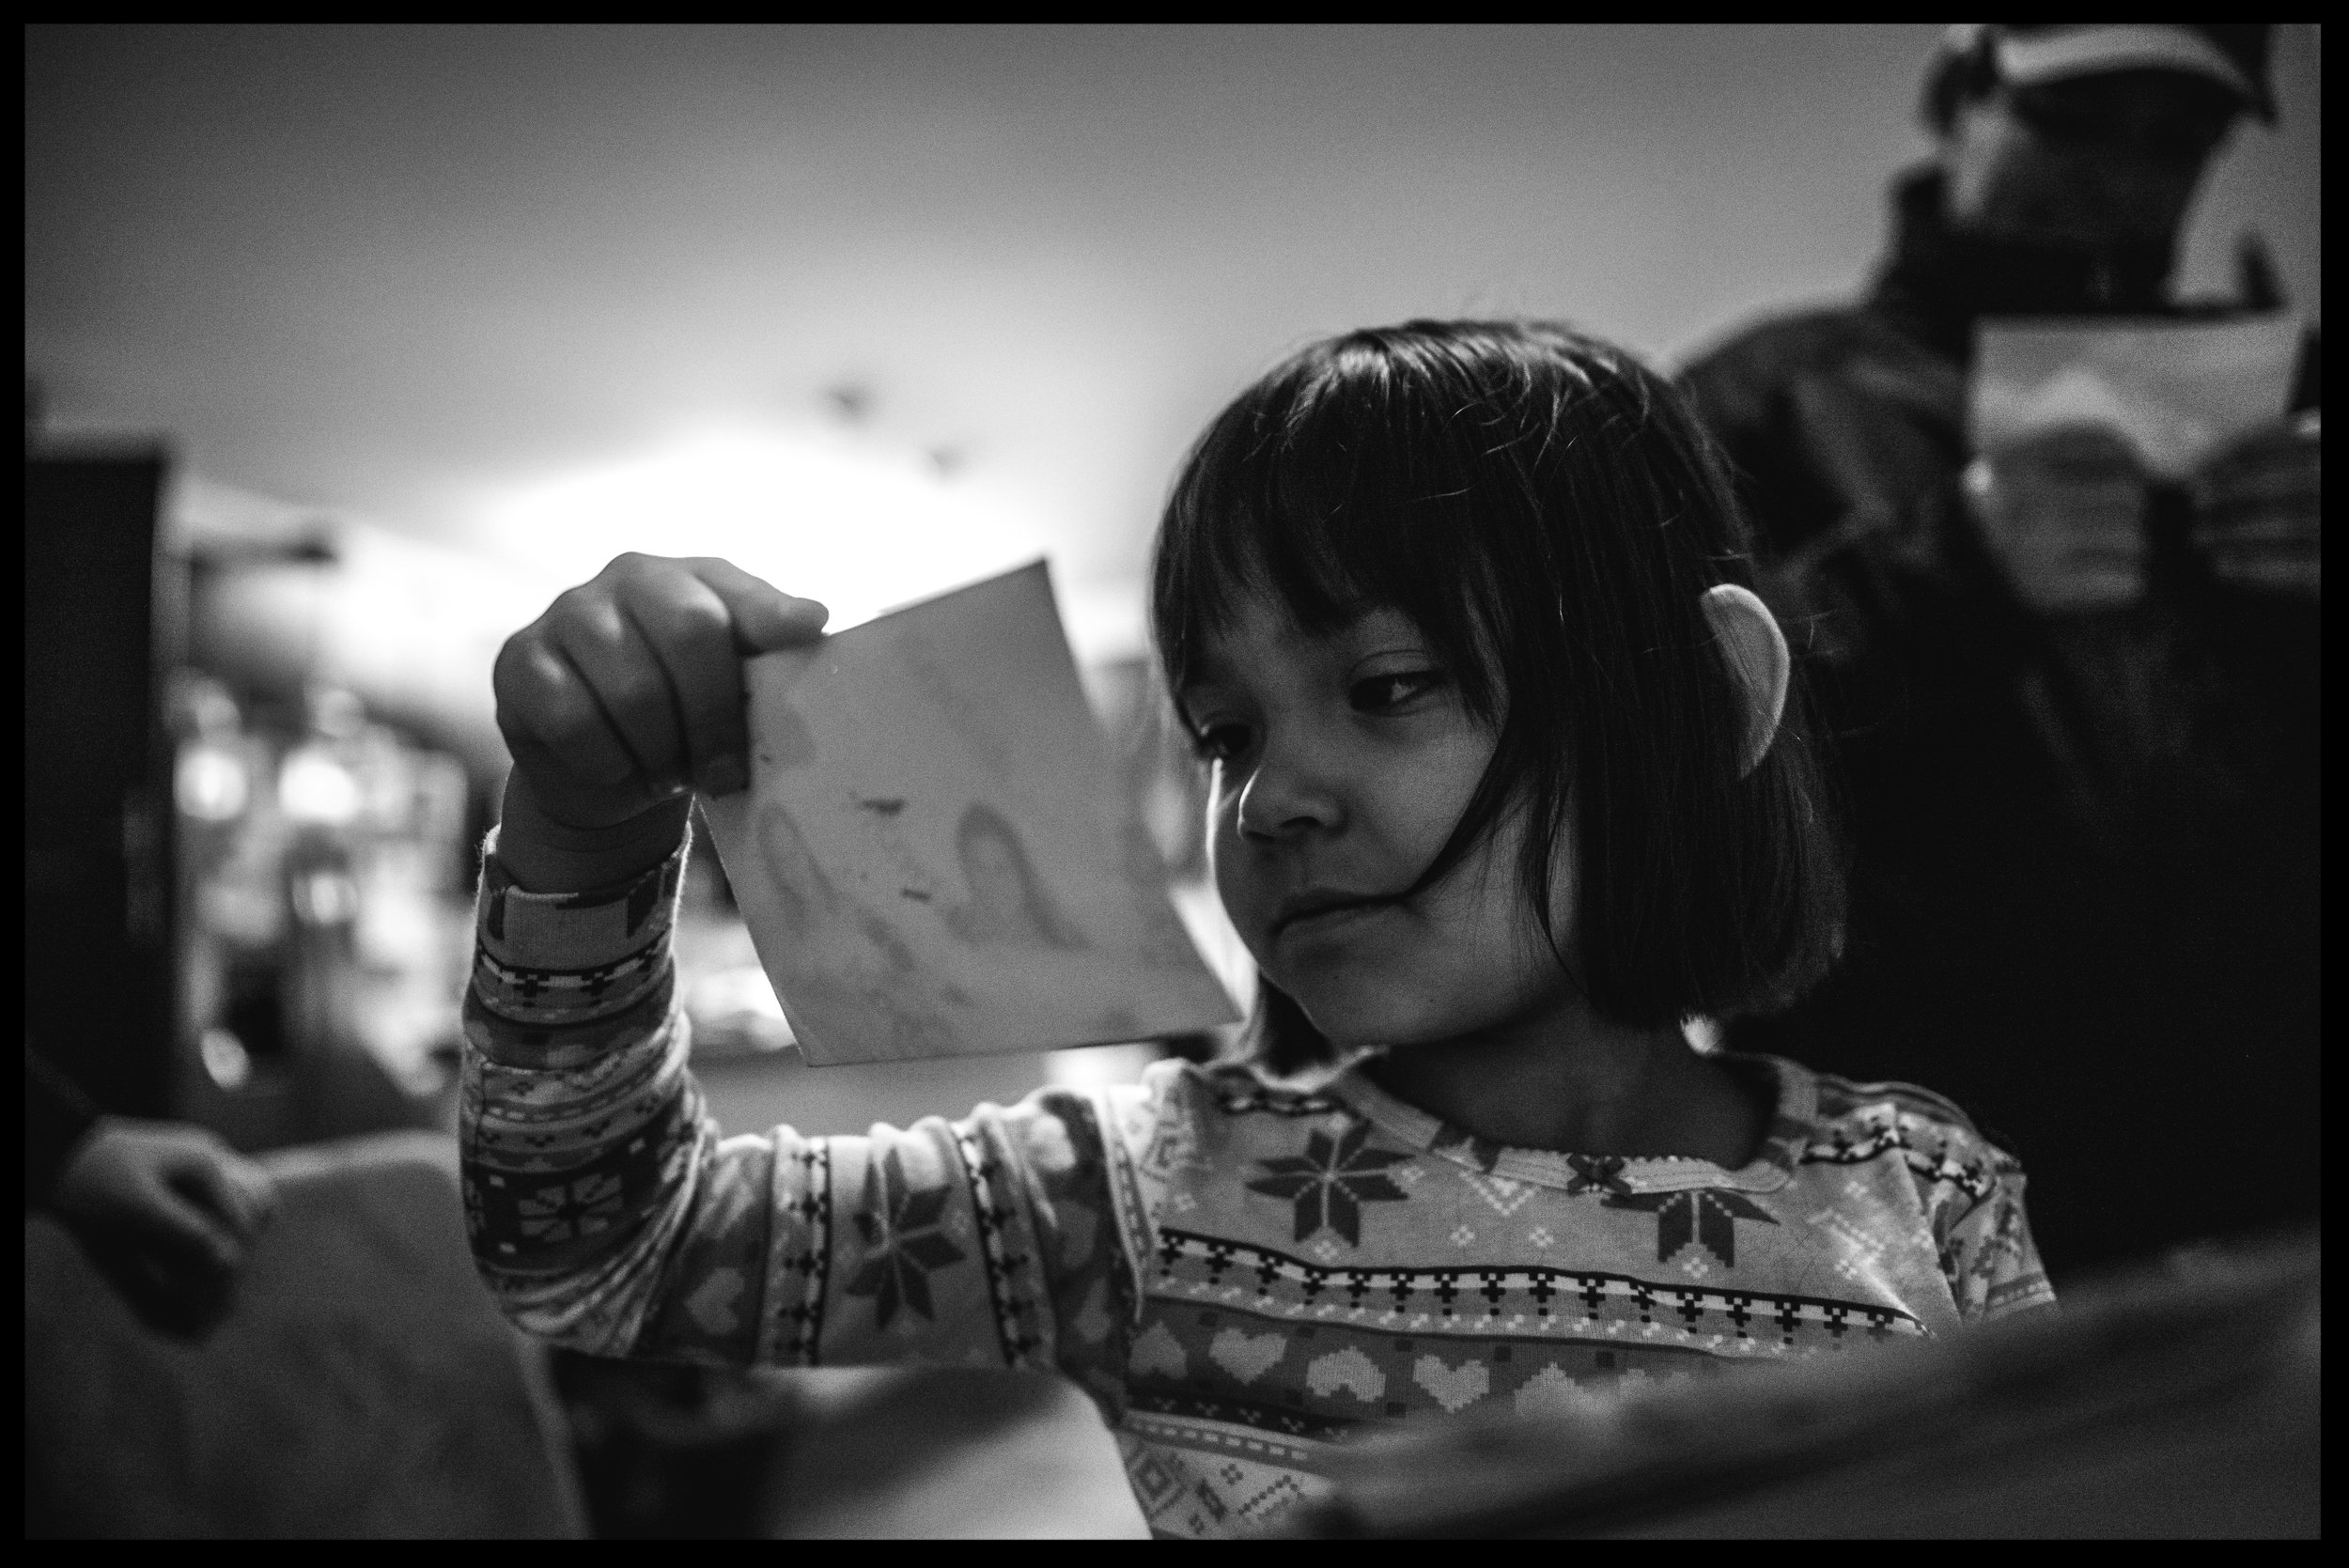 Little girl chewing on her hair and looking at family photos, black and white, Lakewood, Colorado